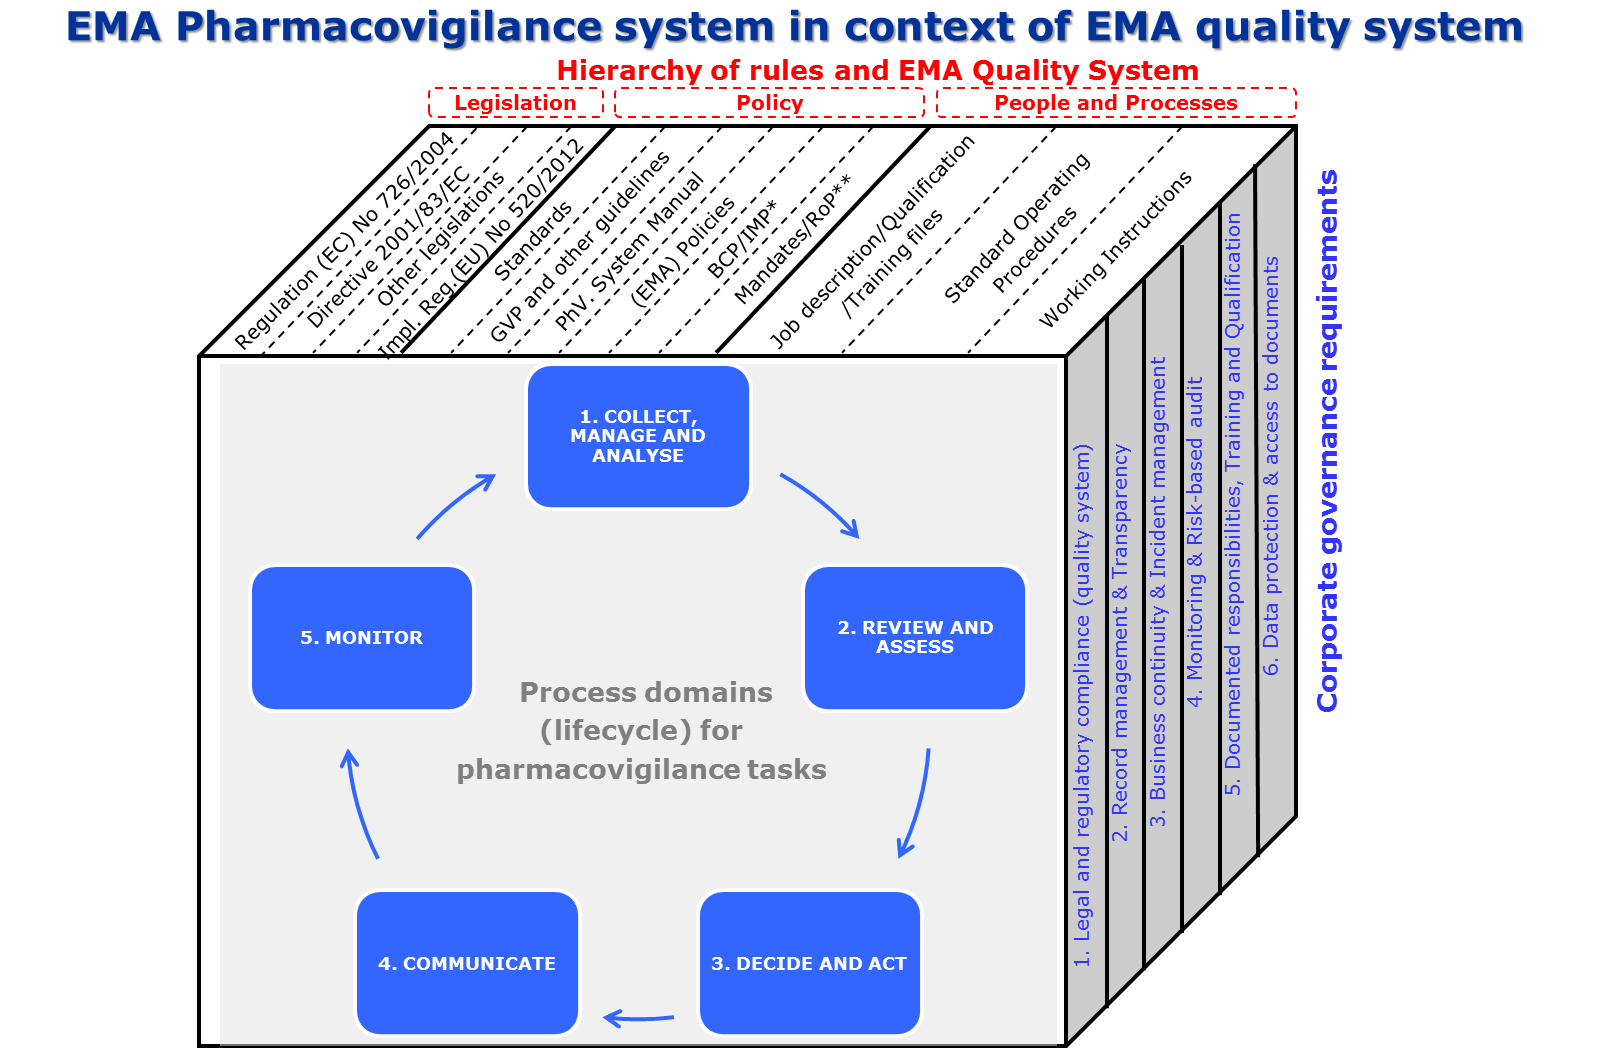 The EMA pharmacovigilance system is embedded in the Agency's overall quality system, and takes account of key corporate governance structure requirements outlined in the Agency's mission and